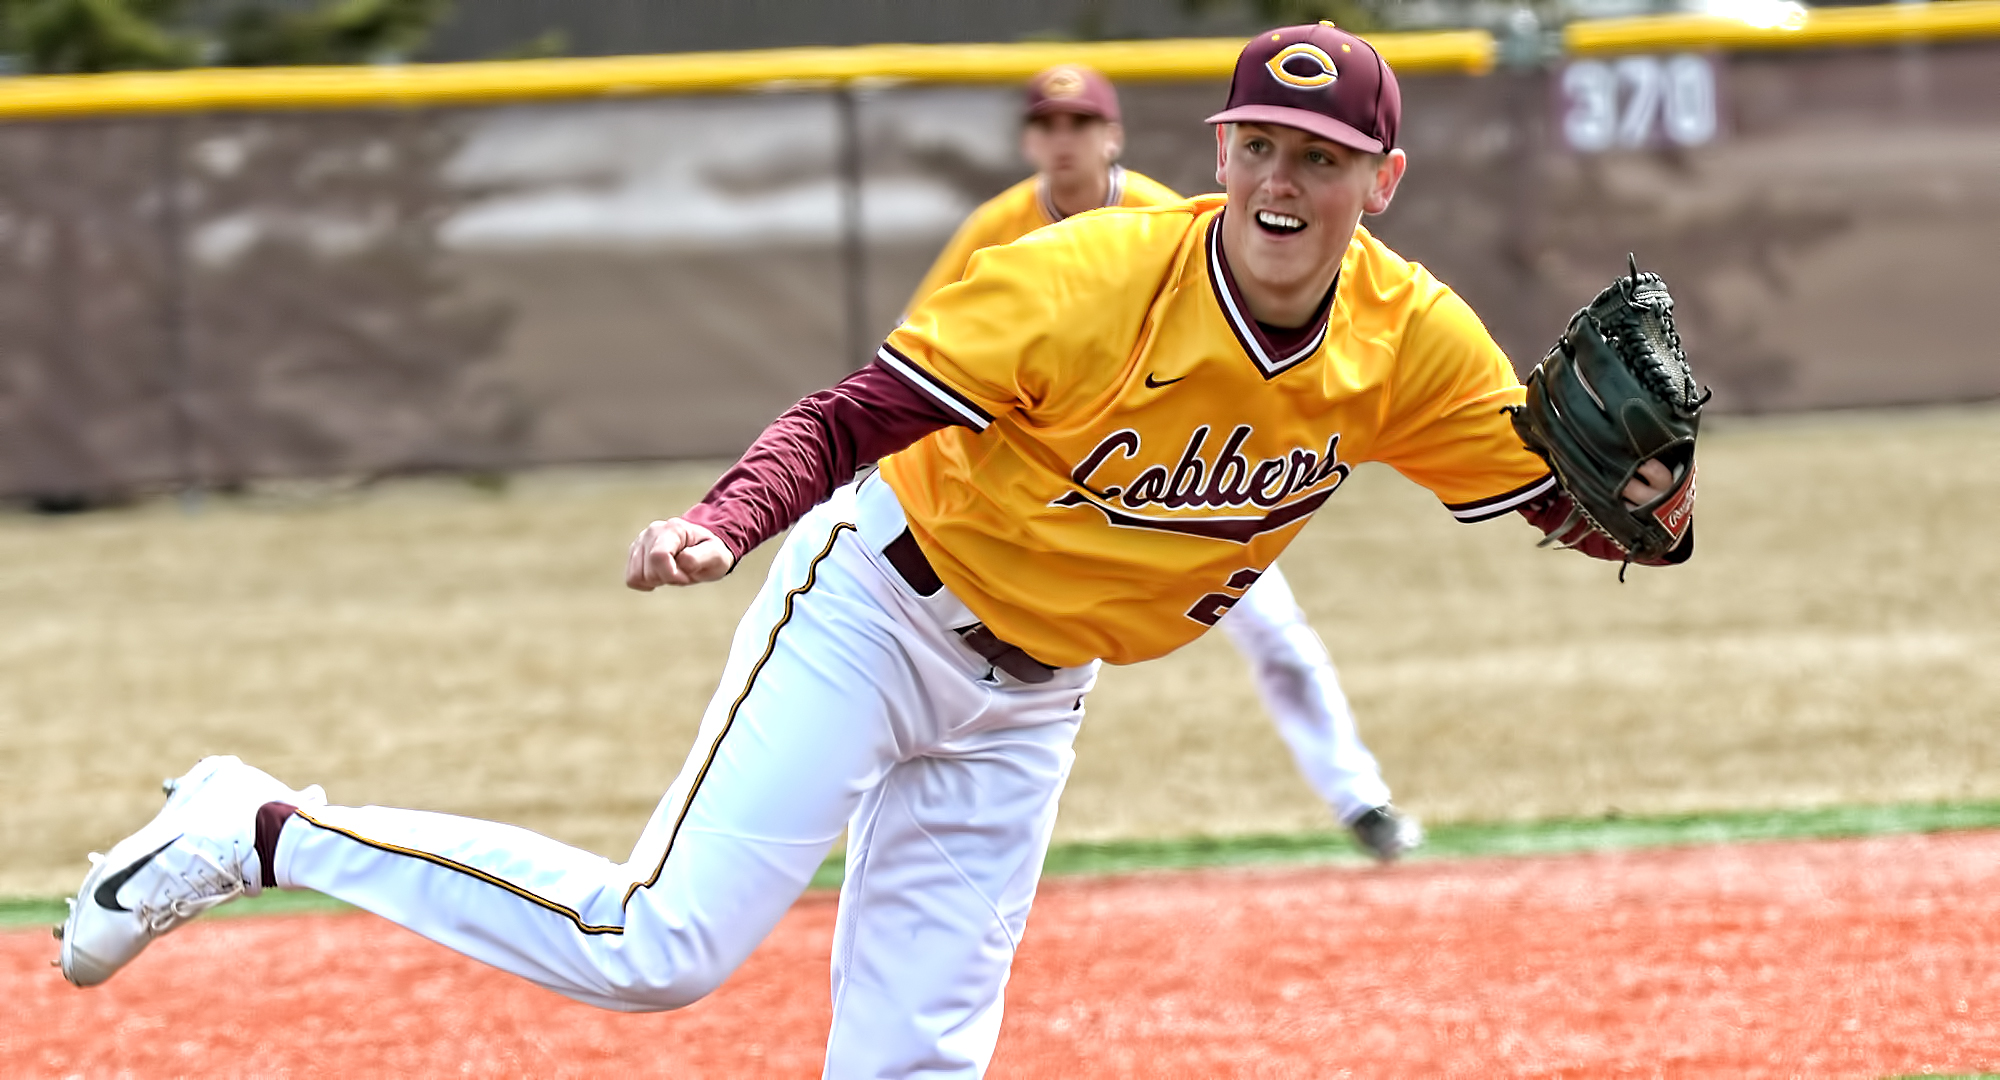 Super senior Cole Christensen recorded a career-high 12 strikeouts and pitched 8.0 scoreless innings to help the Cobbers gain a split with Augsburg in the MIAC opener.